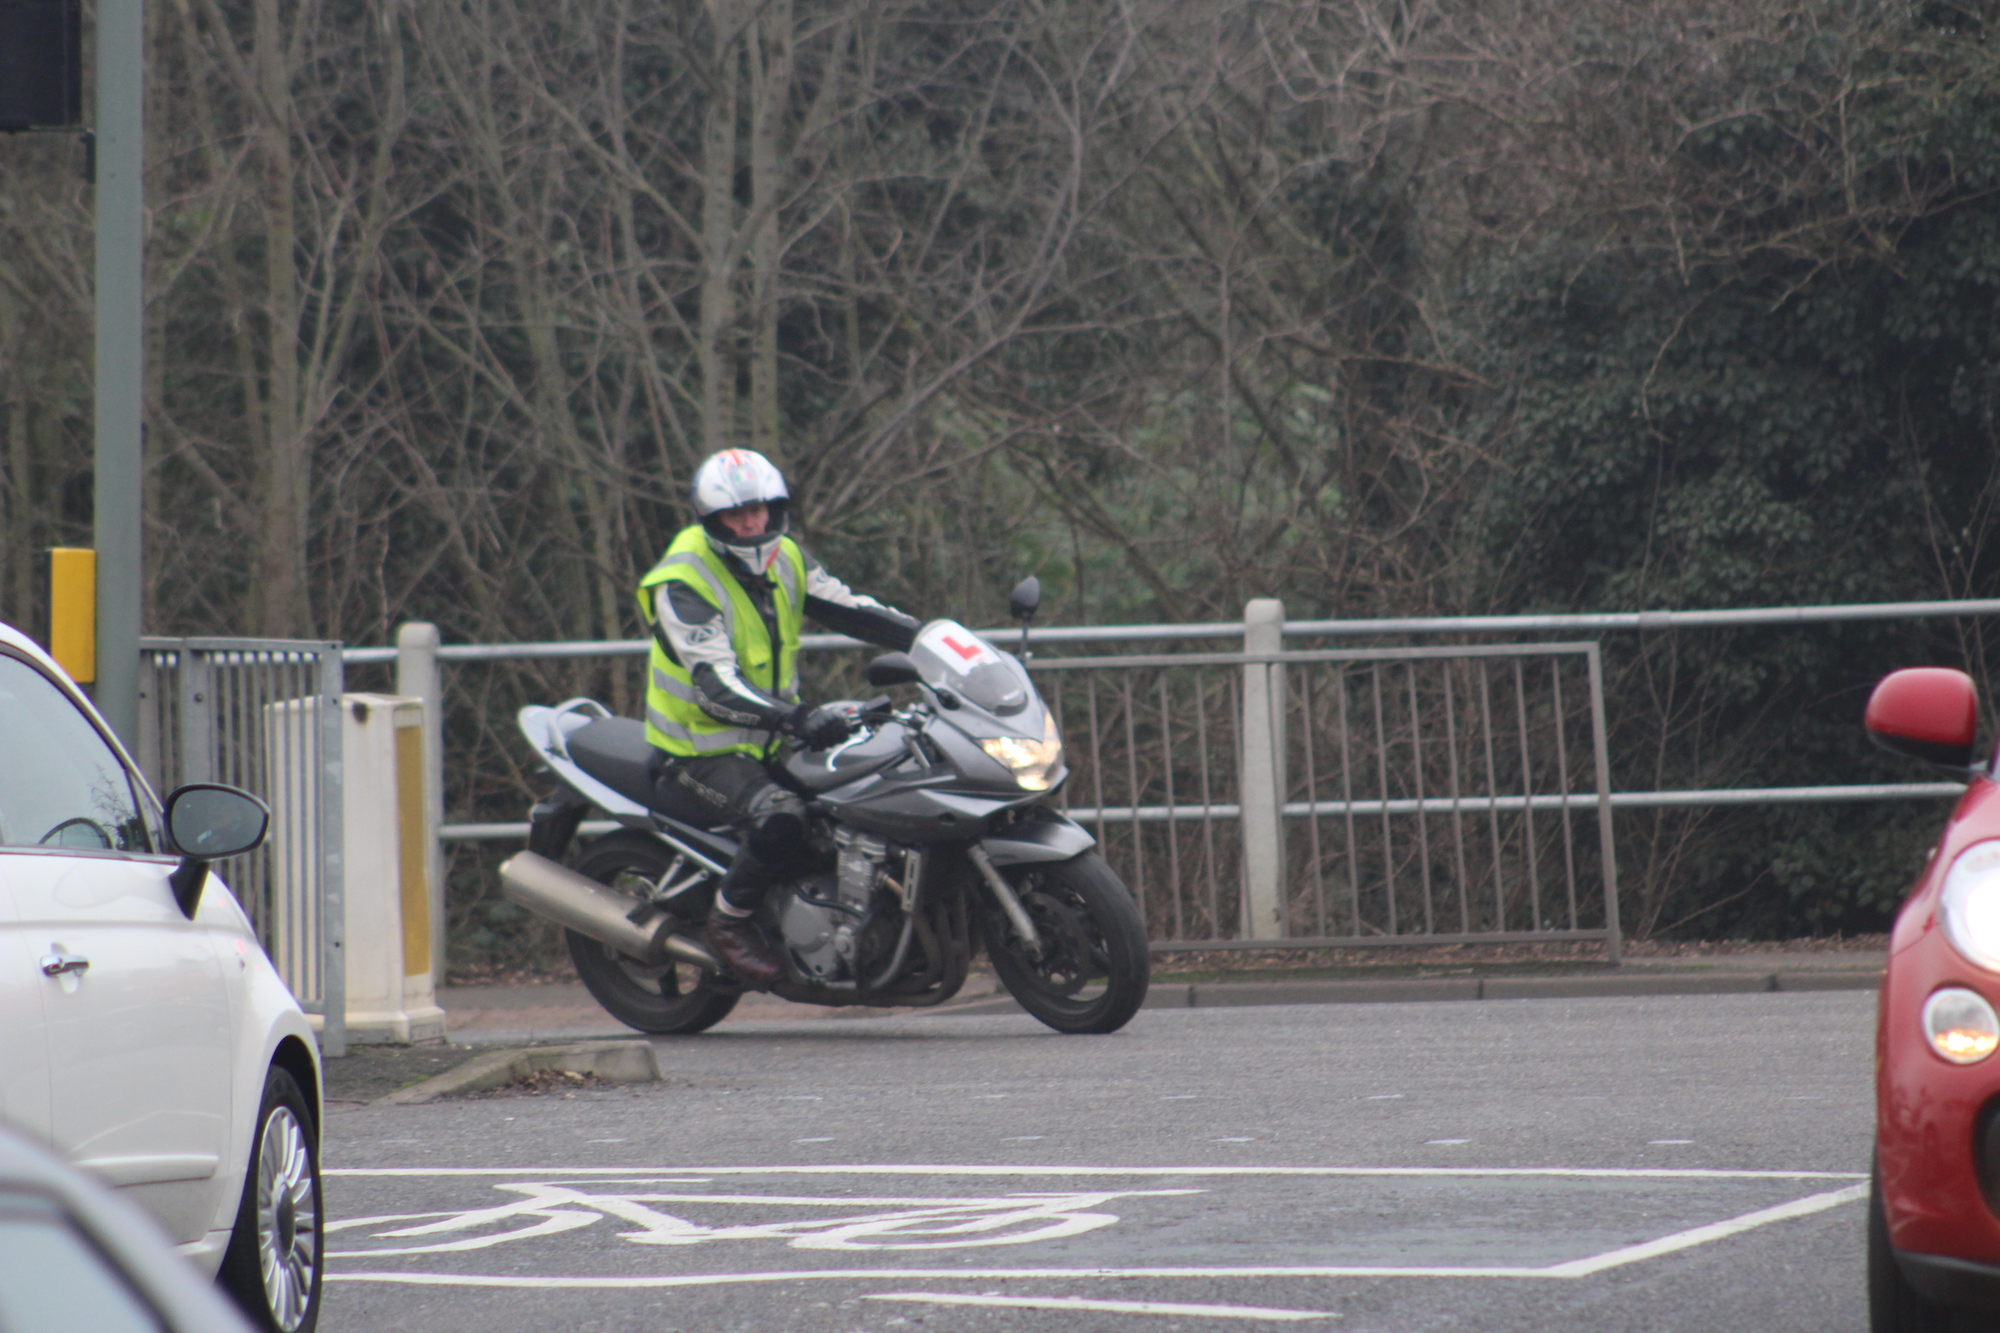 Motorbike test in Sutton Coldfield, Solihull